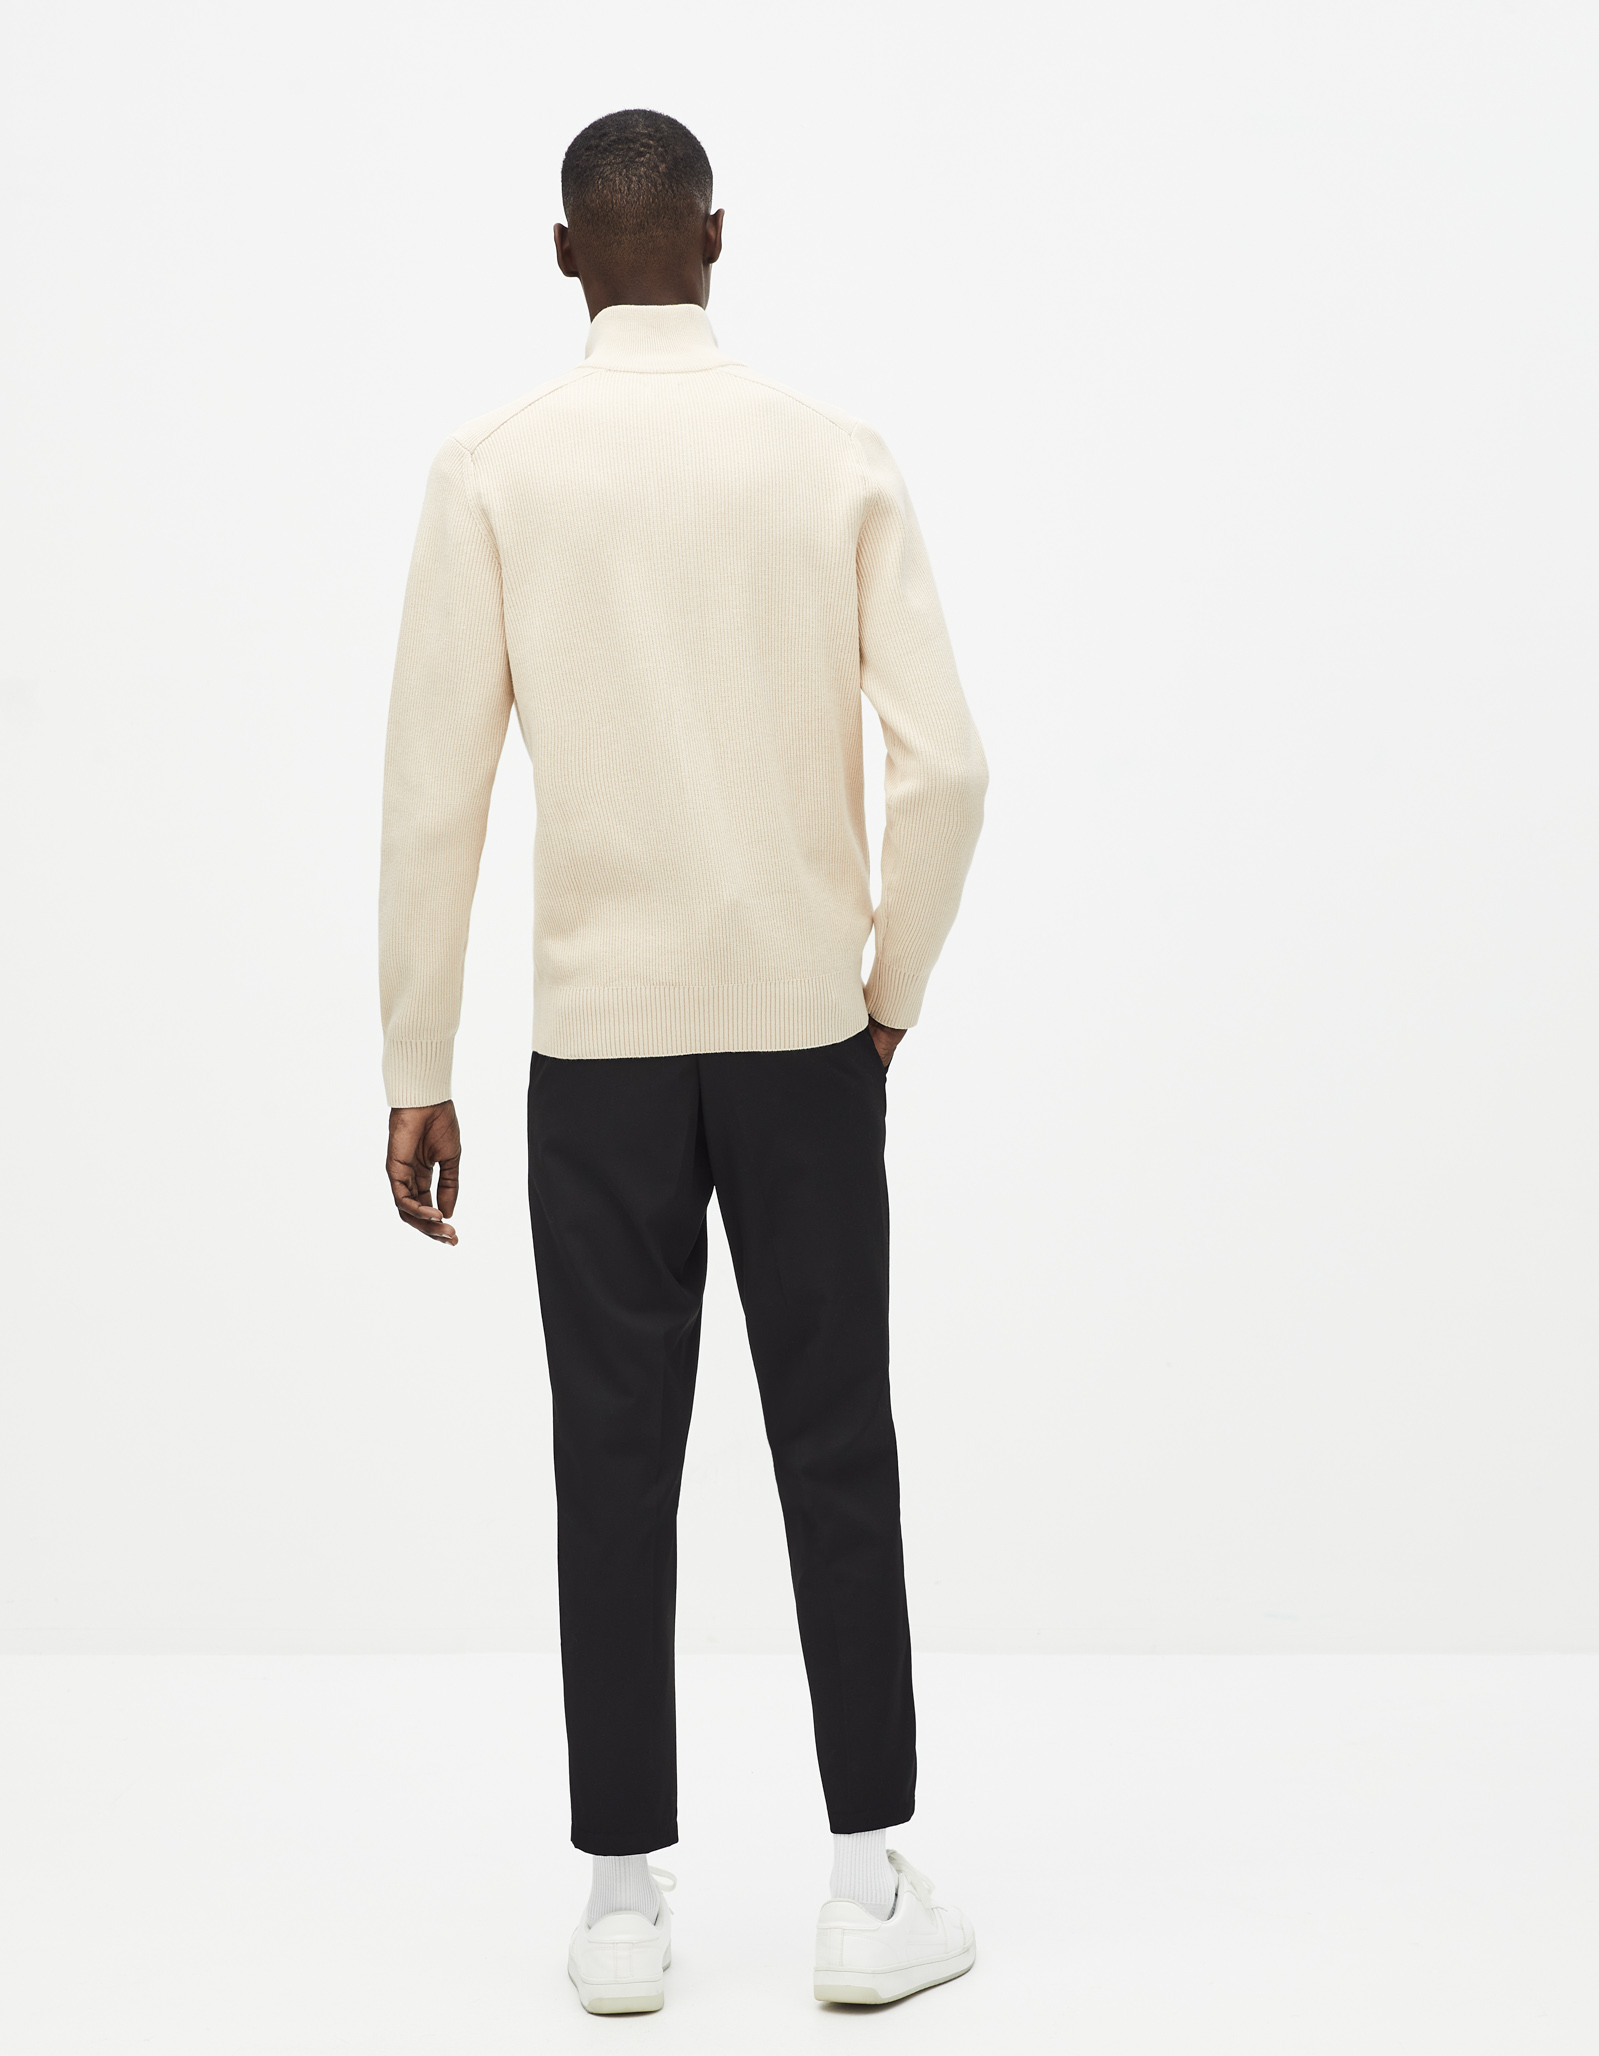 SETRUCK_OFFWHITE_4